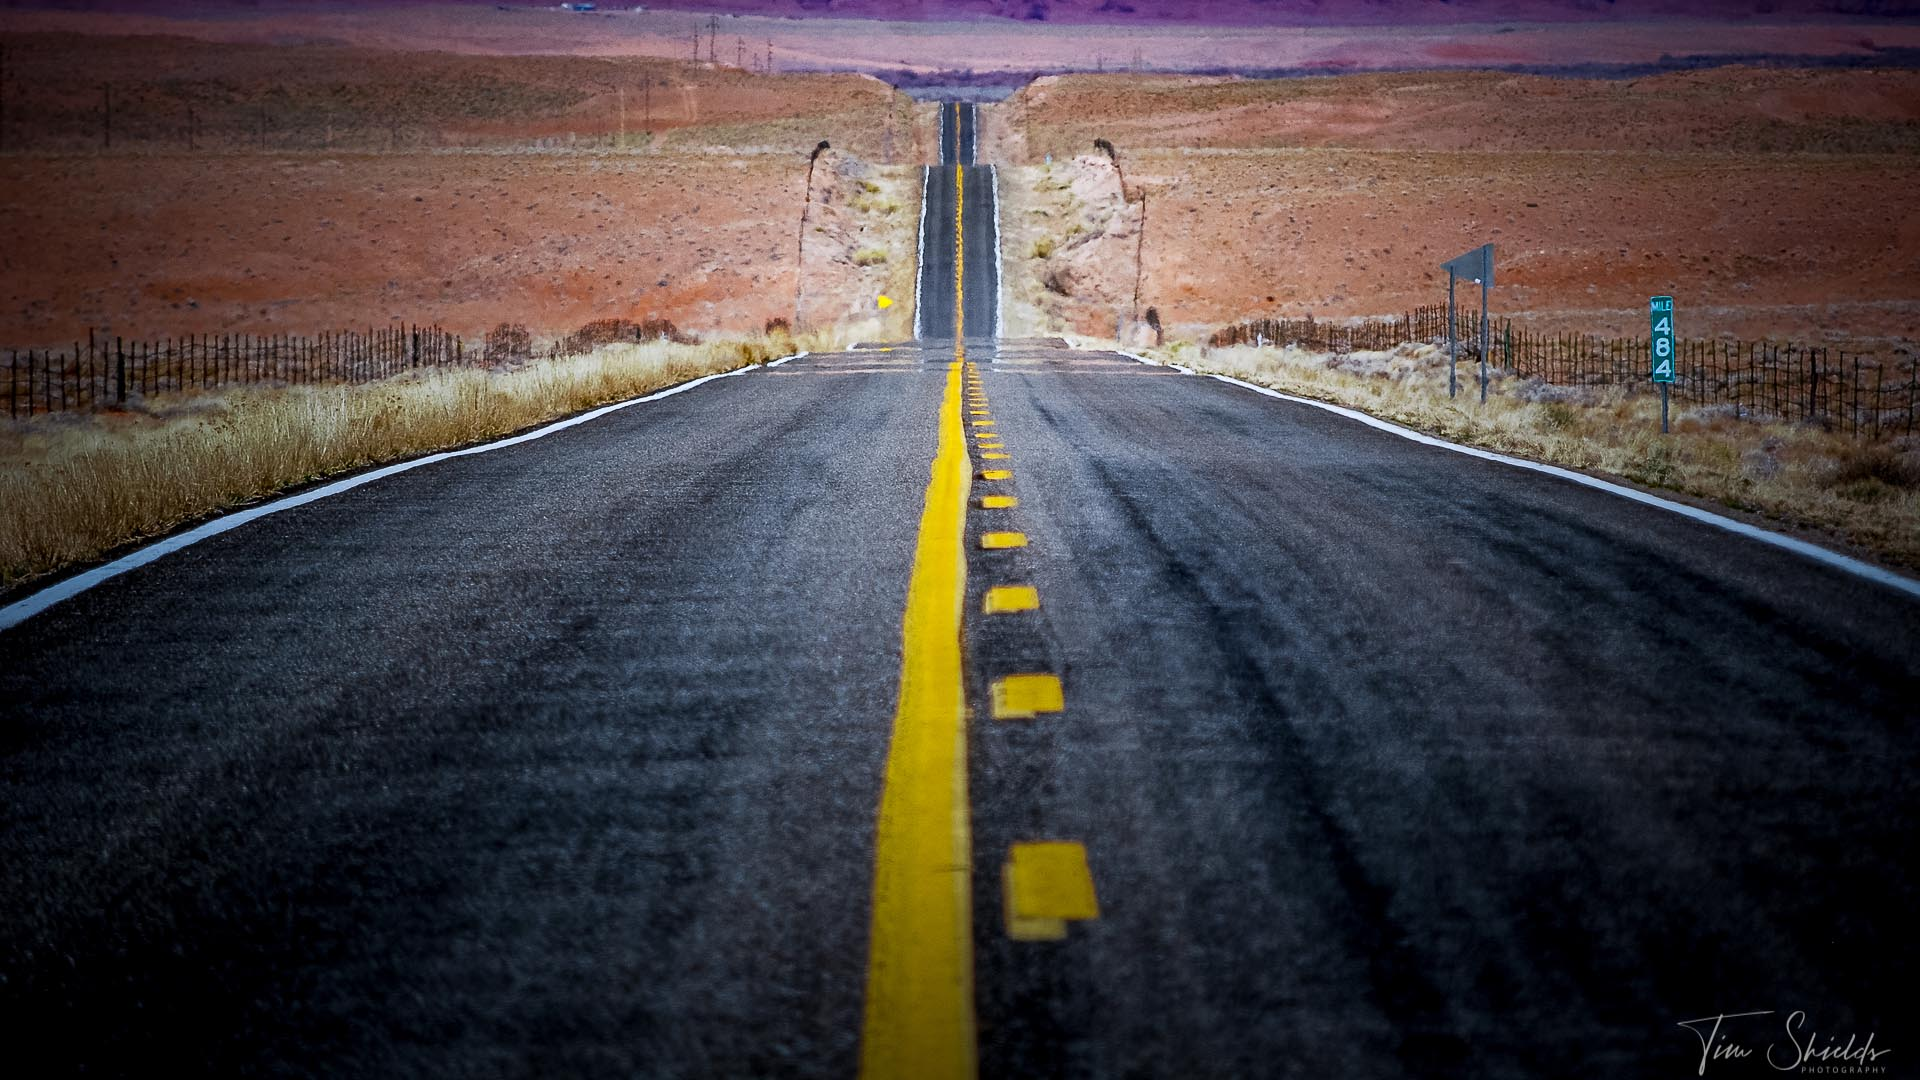 A photo of a long, straight road in Death Valley